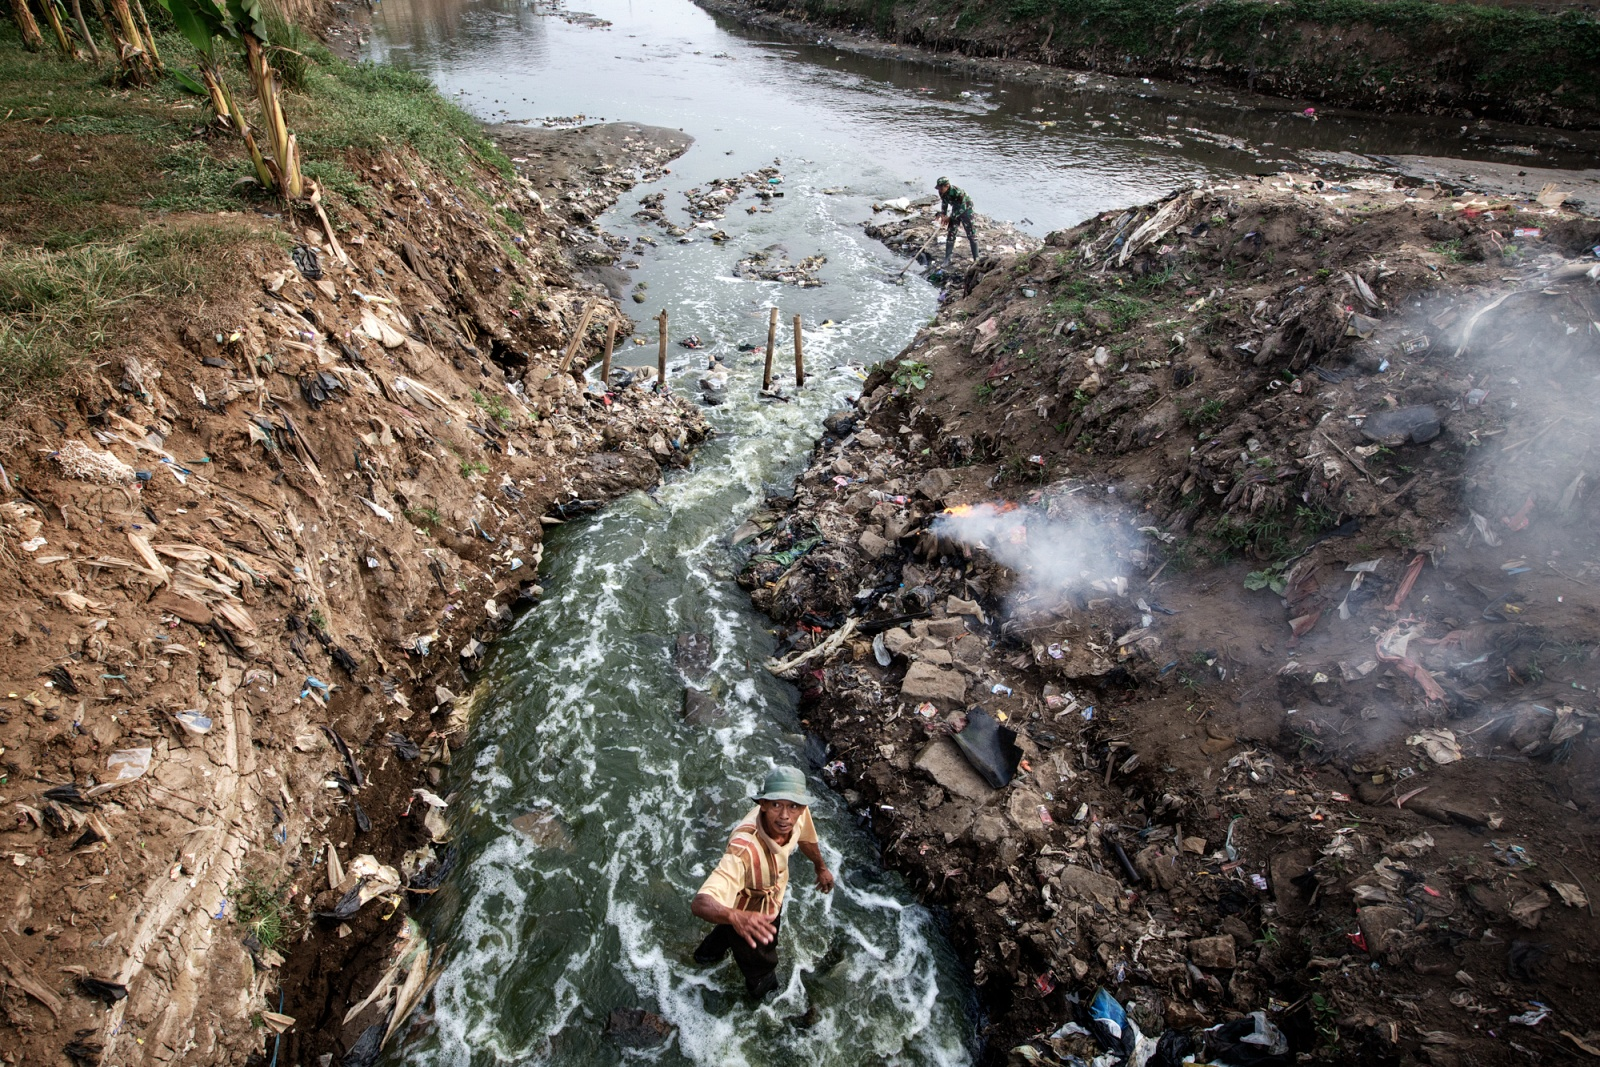 Bojongsoang village, Bandung Regency, West Jawa, Indonesia, 2019 - Recent research has found an alarming level of toxic substances in the Citarum River, with values 1000 times higher than the US standards for water safety. The use of its waters is extremely risky for the lives of the 30 million people.